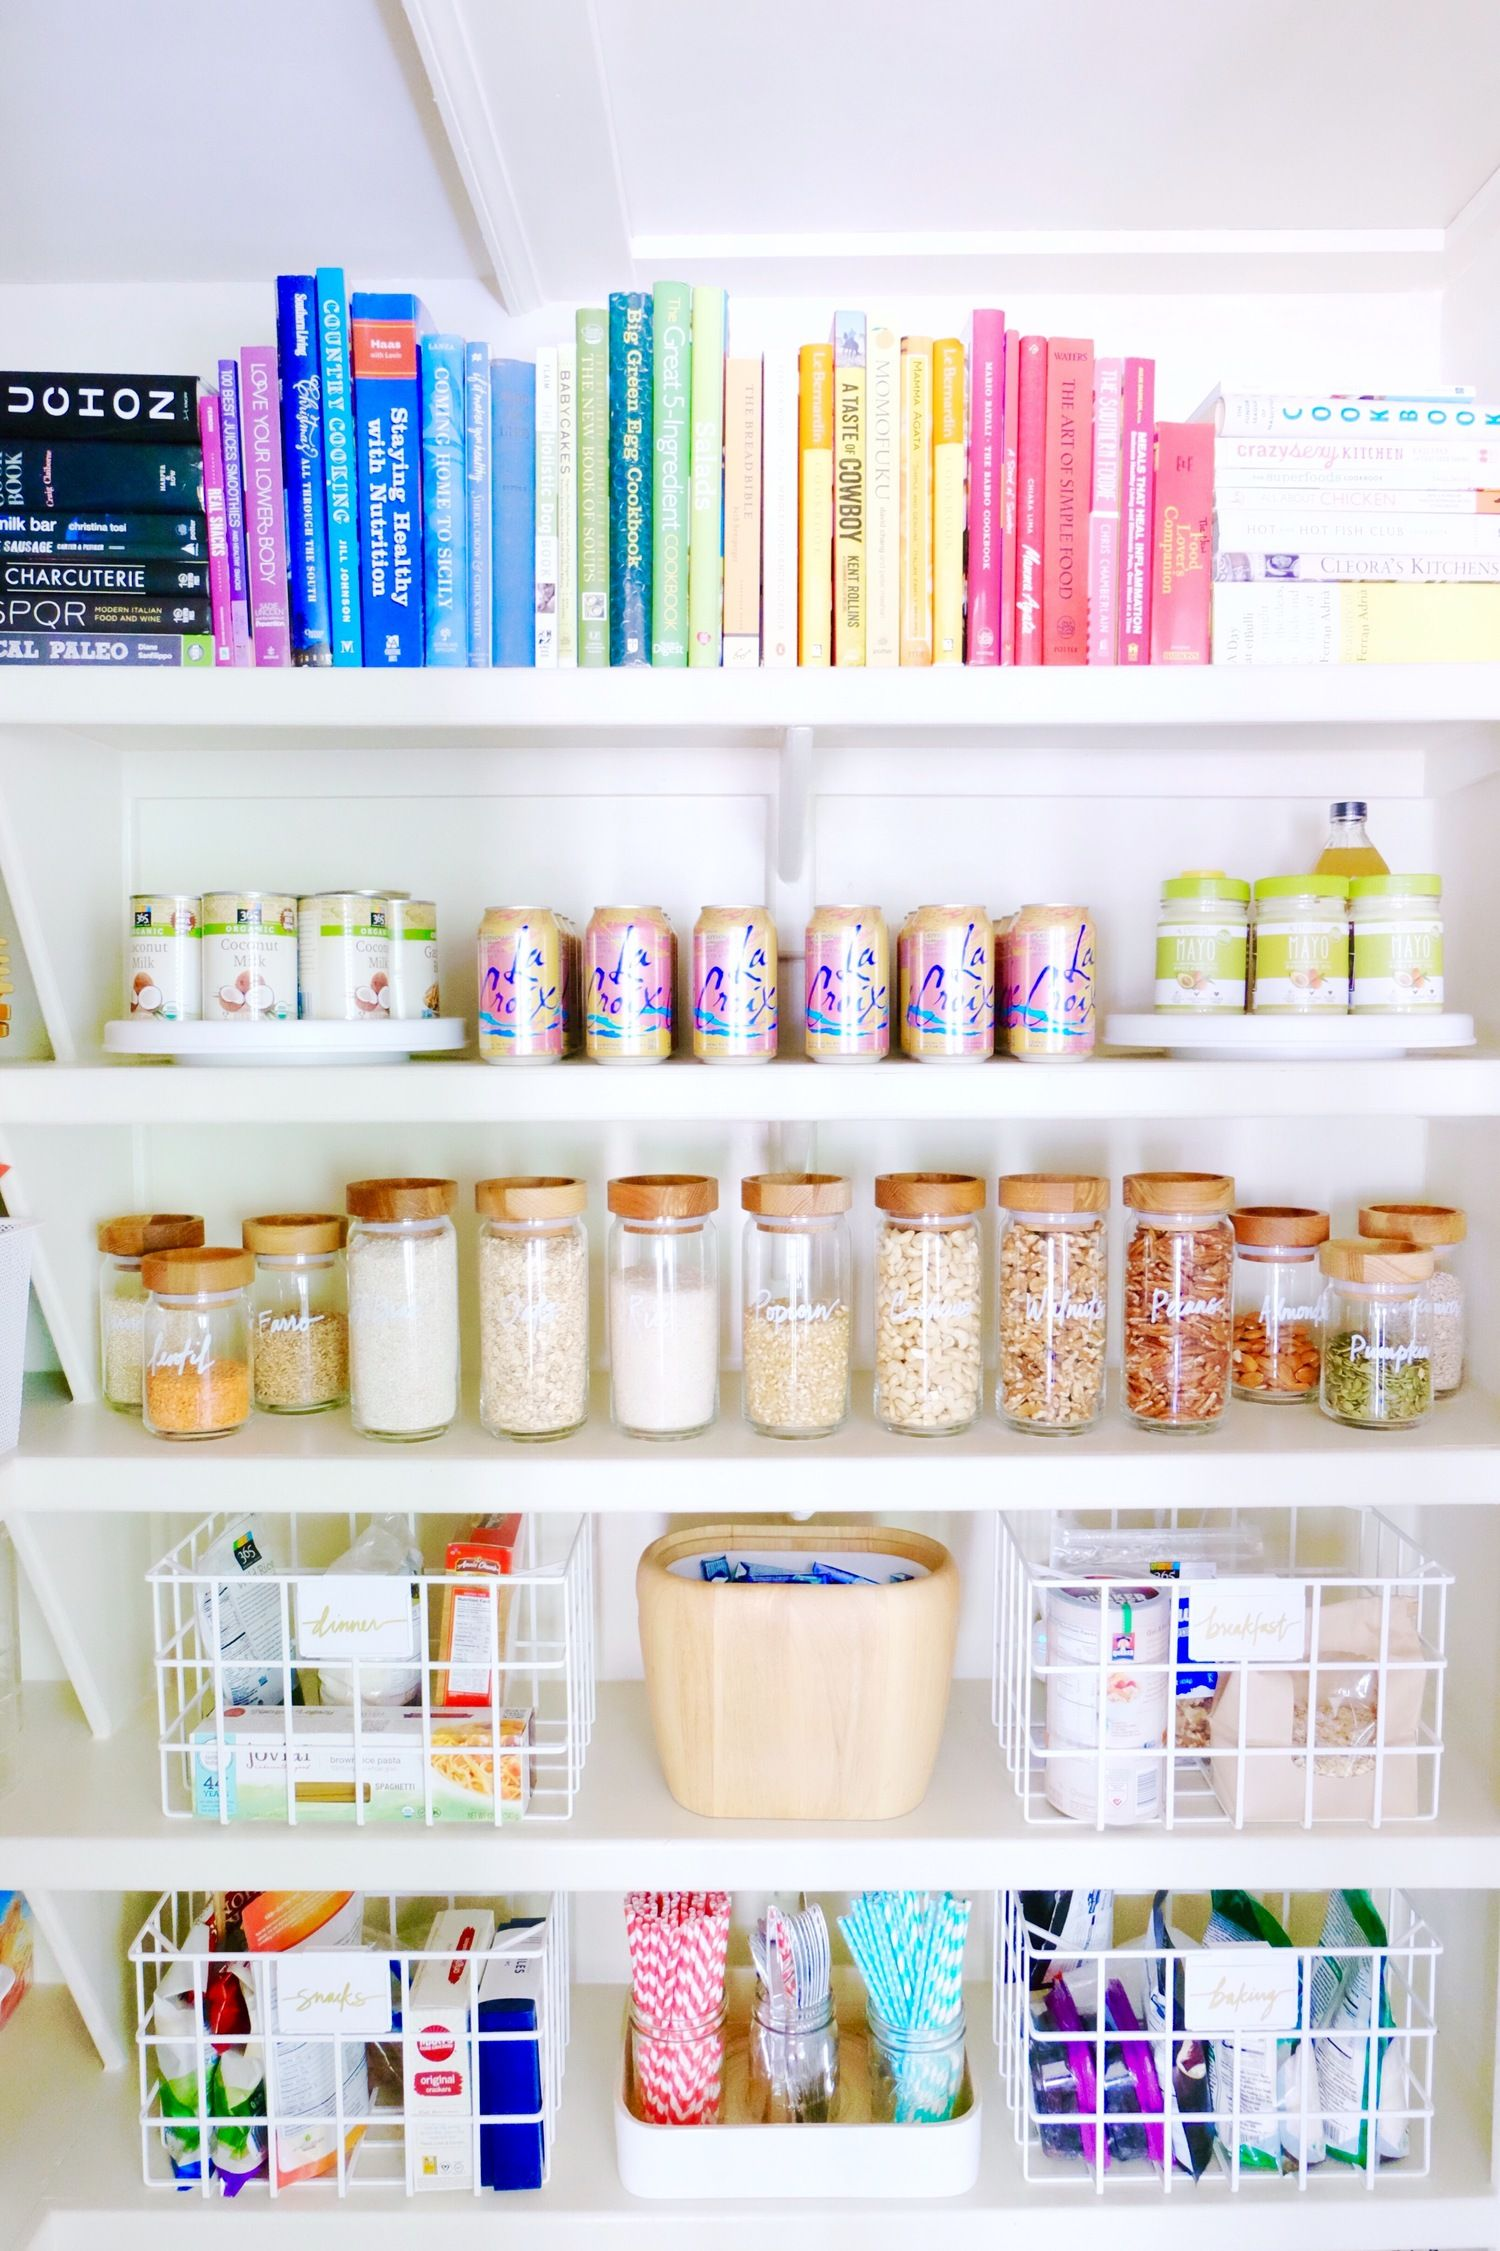 THE x LAUREN CONRAD | Shopping lists, Pantry and Kitchens